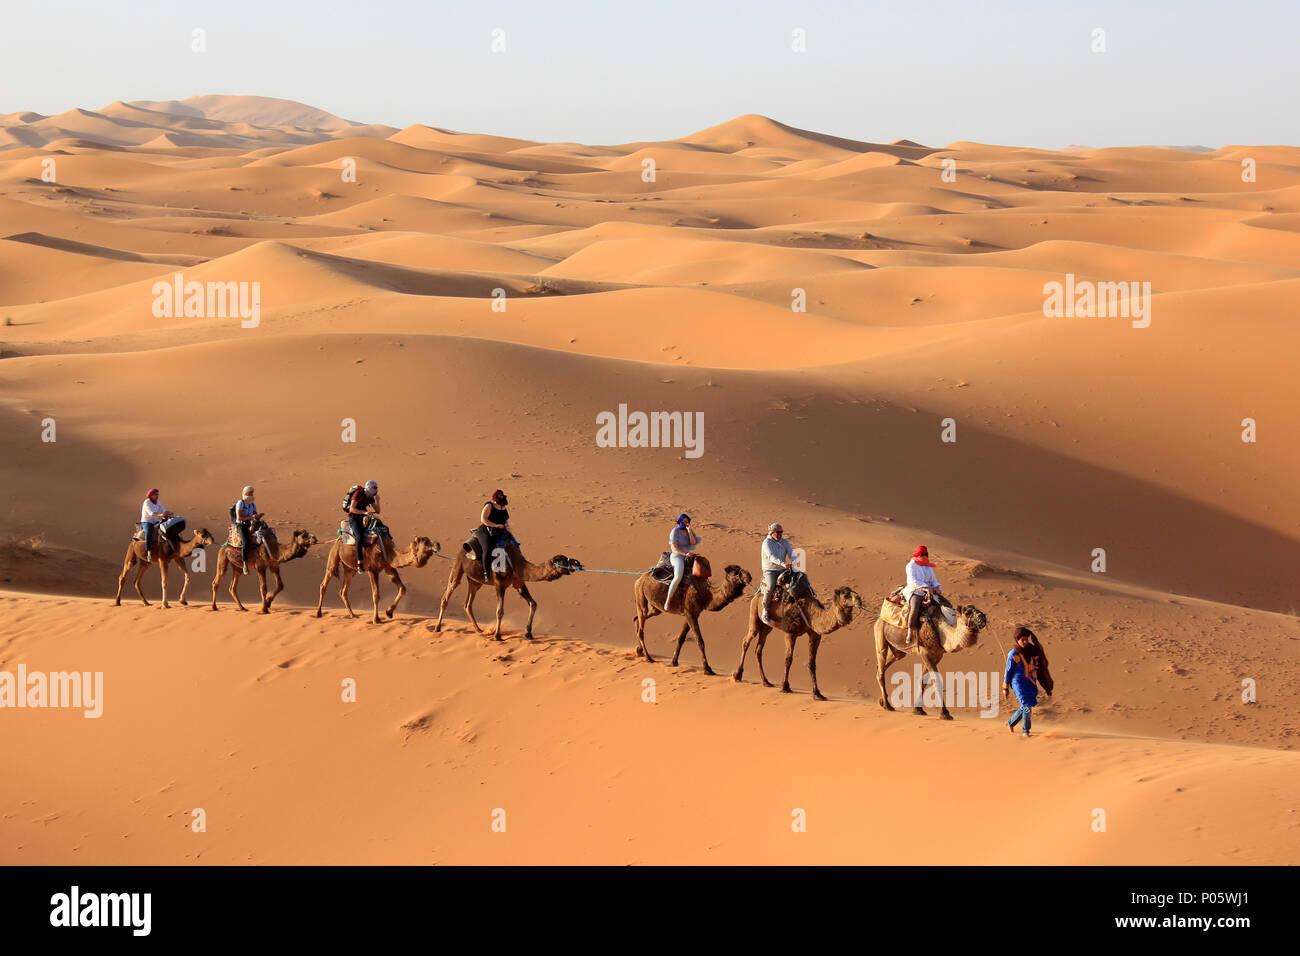 Tourists Enjoying Camel Trek In Erg Chebbi Dunes, Merzouga, Morocco - Stock Image